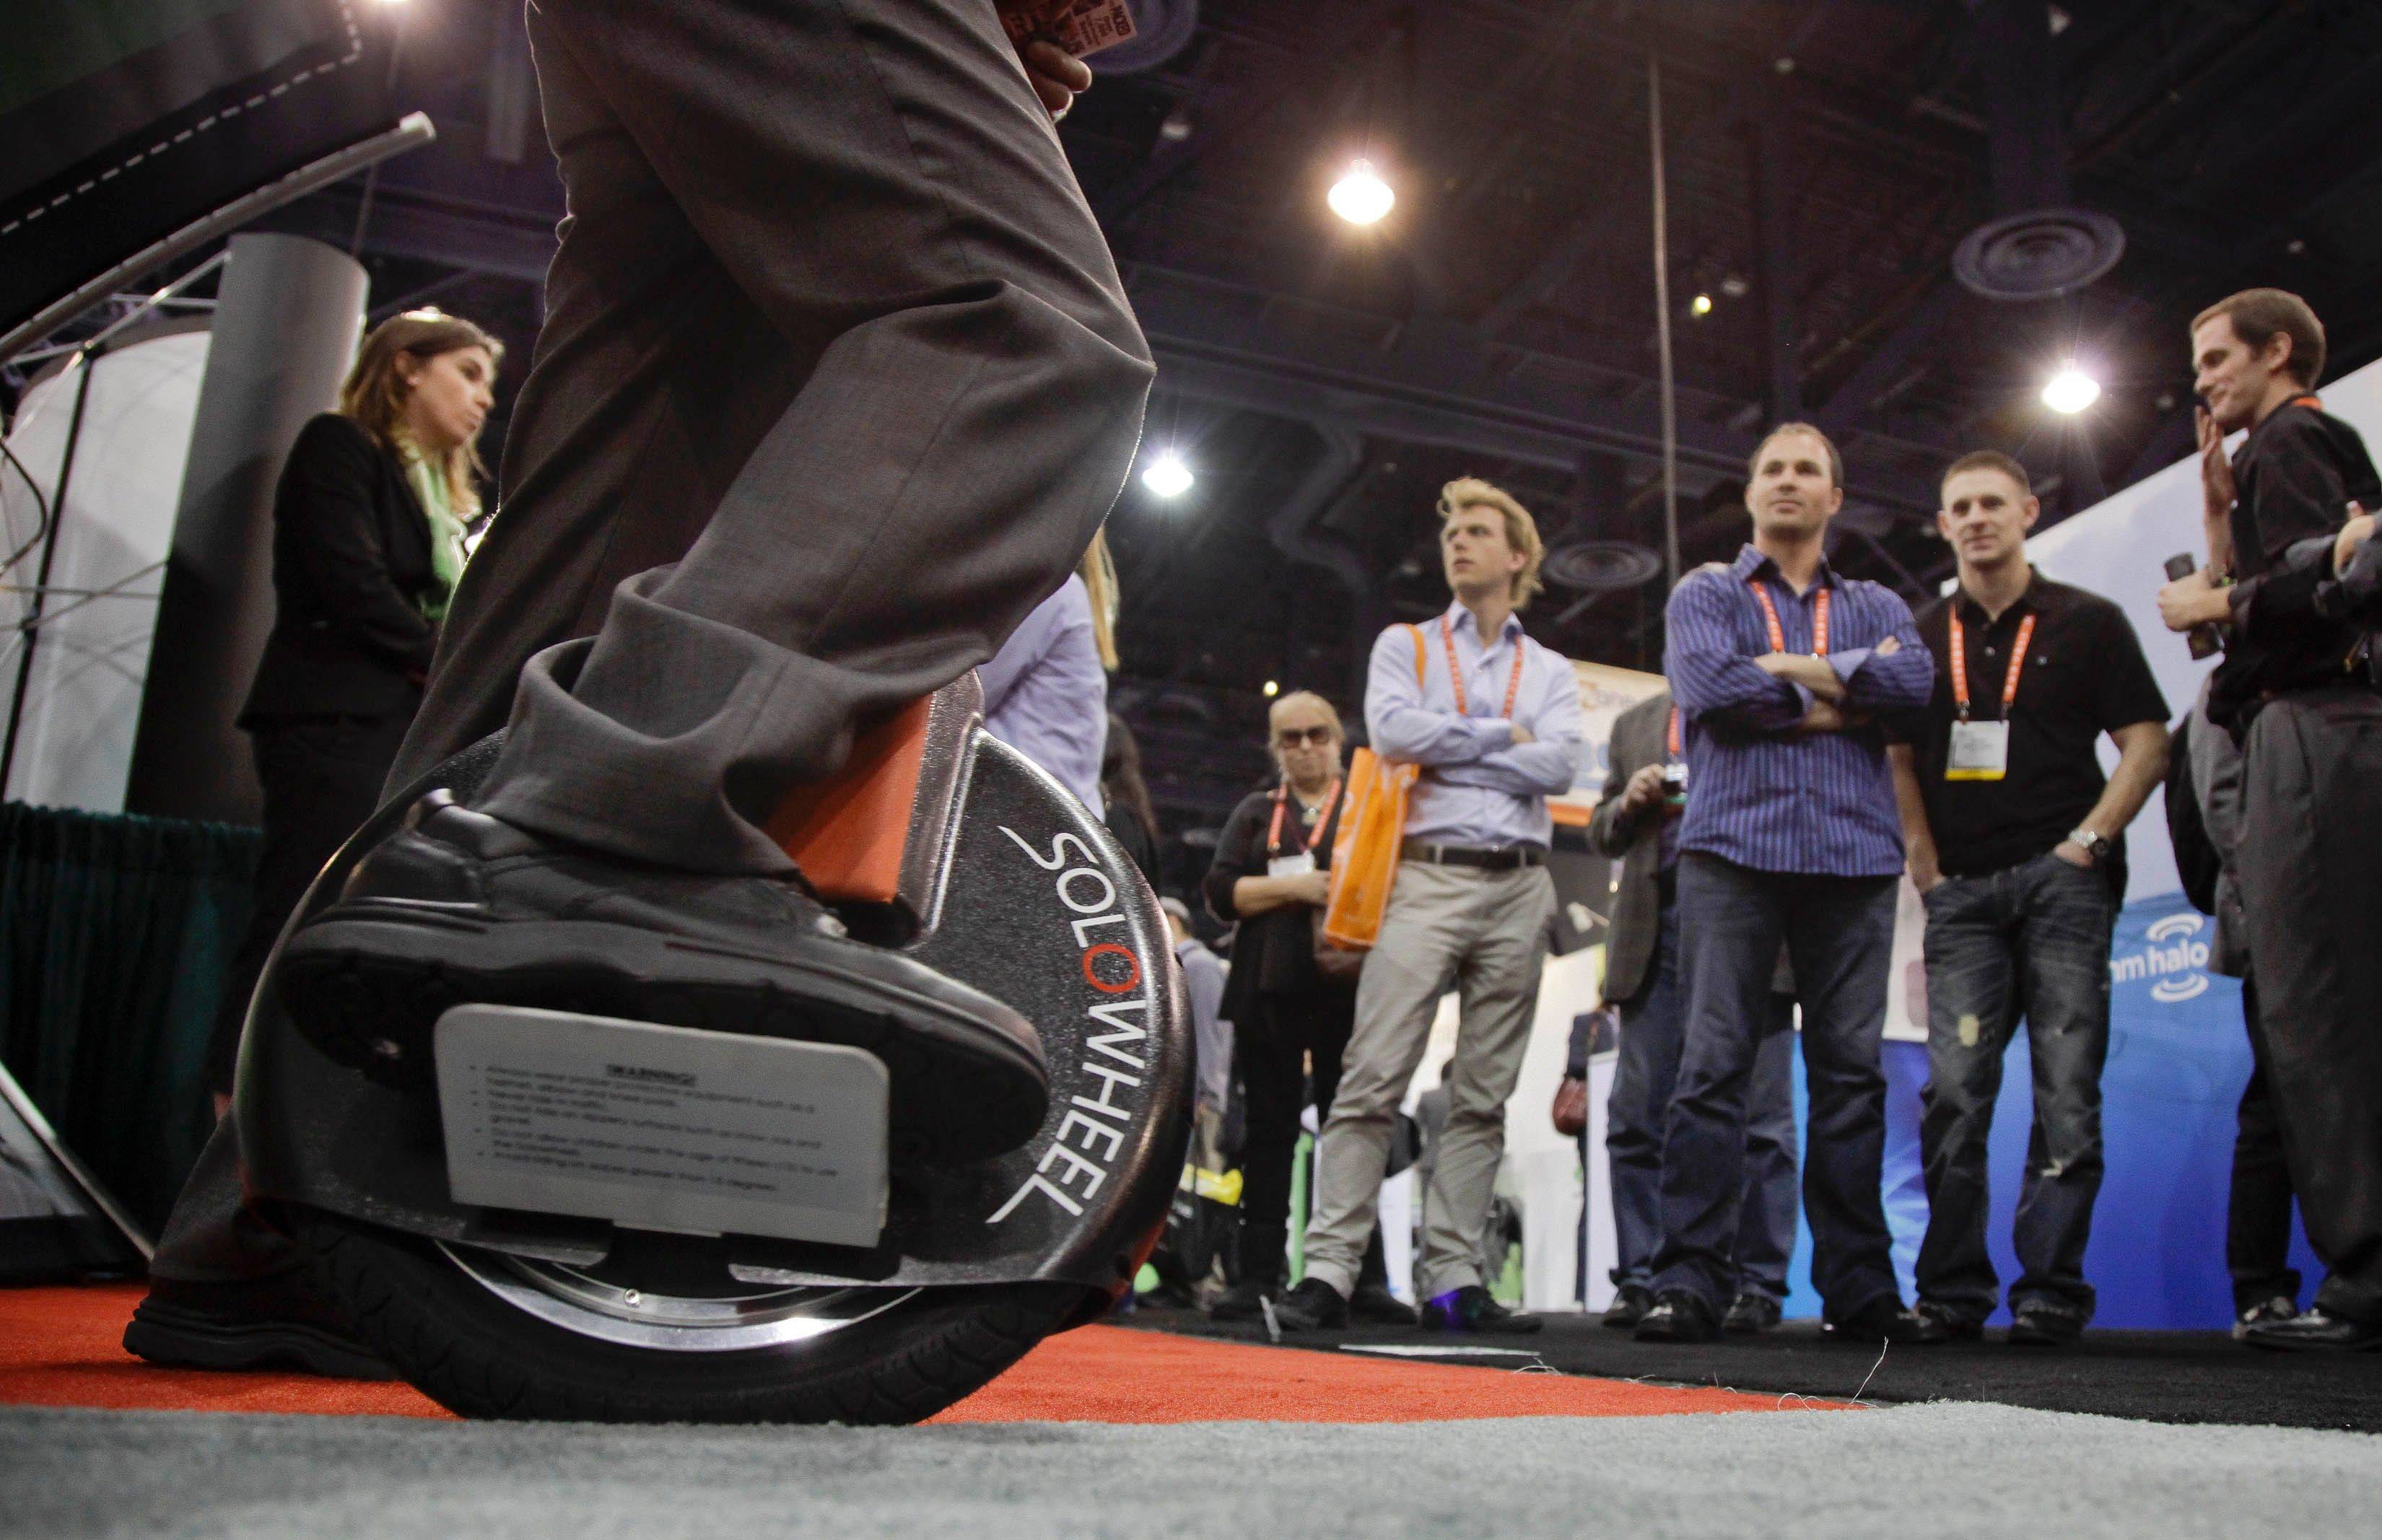 Solowheel at the 2012 International Consumer Electronics Show in Las Vegas. The one-wheeled device, which has no frame or saddle, uses footboards that fold out from the wheel and a gyroscope that helps keep the rider upright.